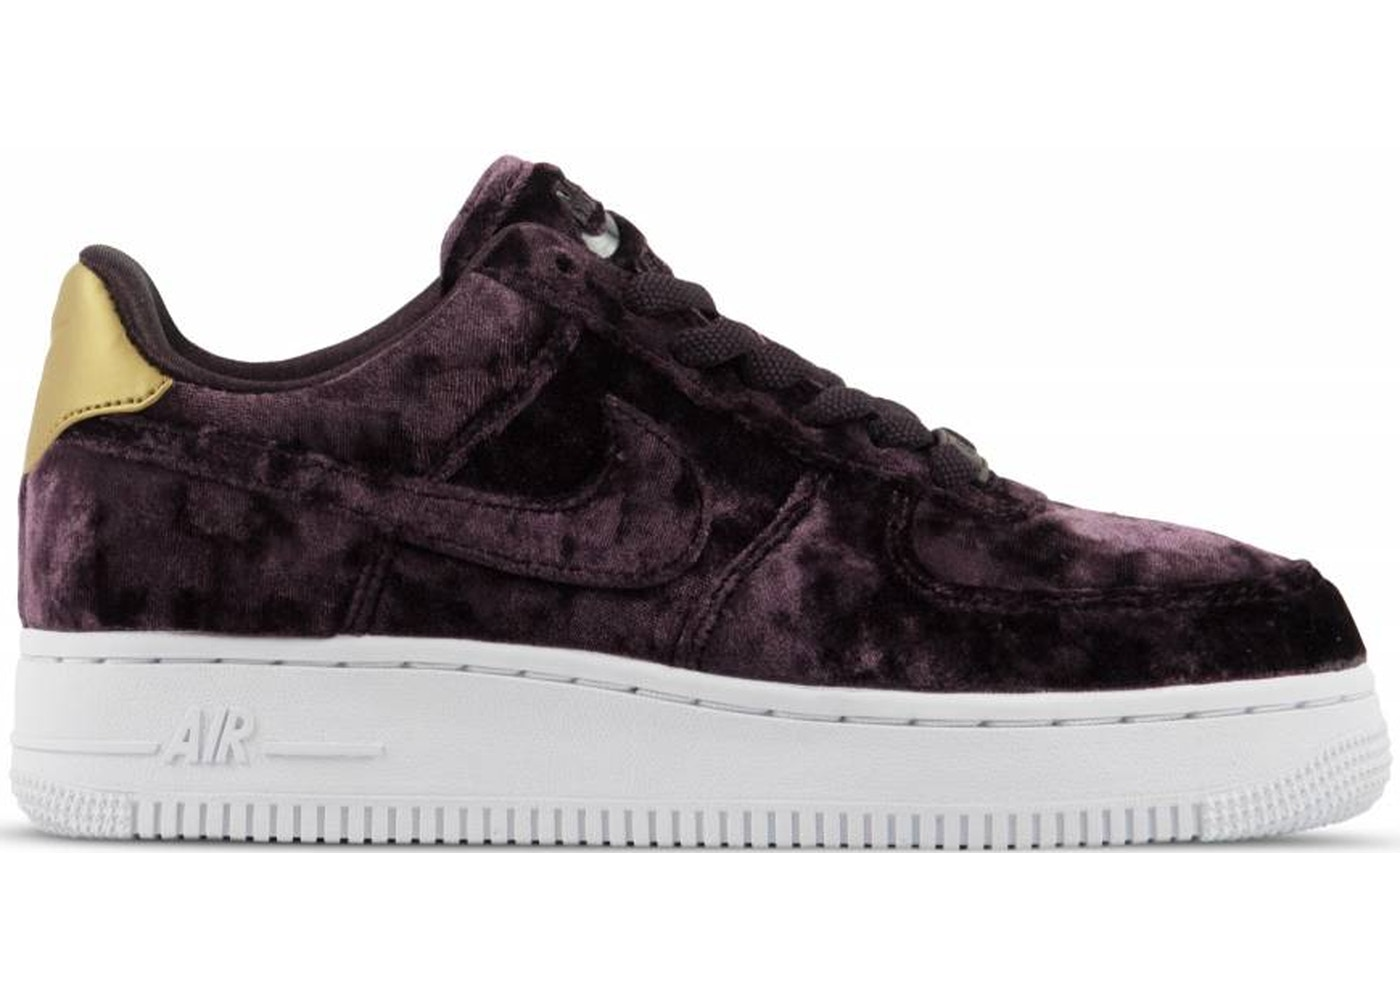 competitive price 0b700 26c88 Air Force 1 Low Port Wine Velvet (W) - 896185-600